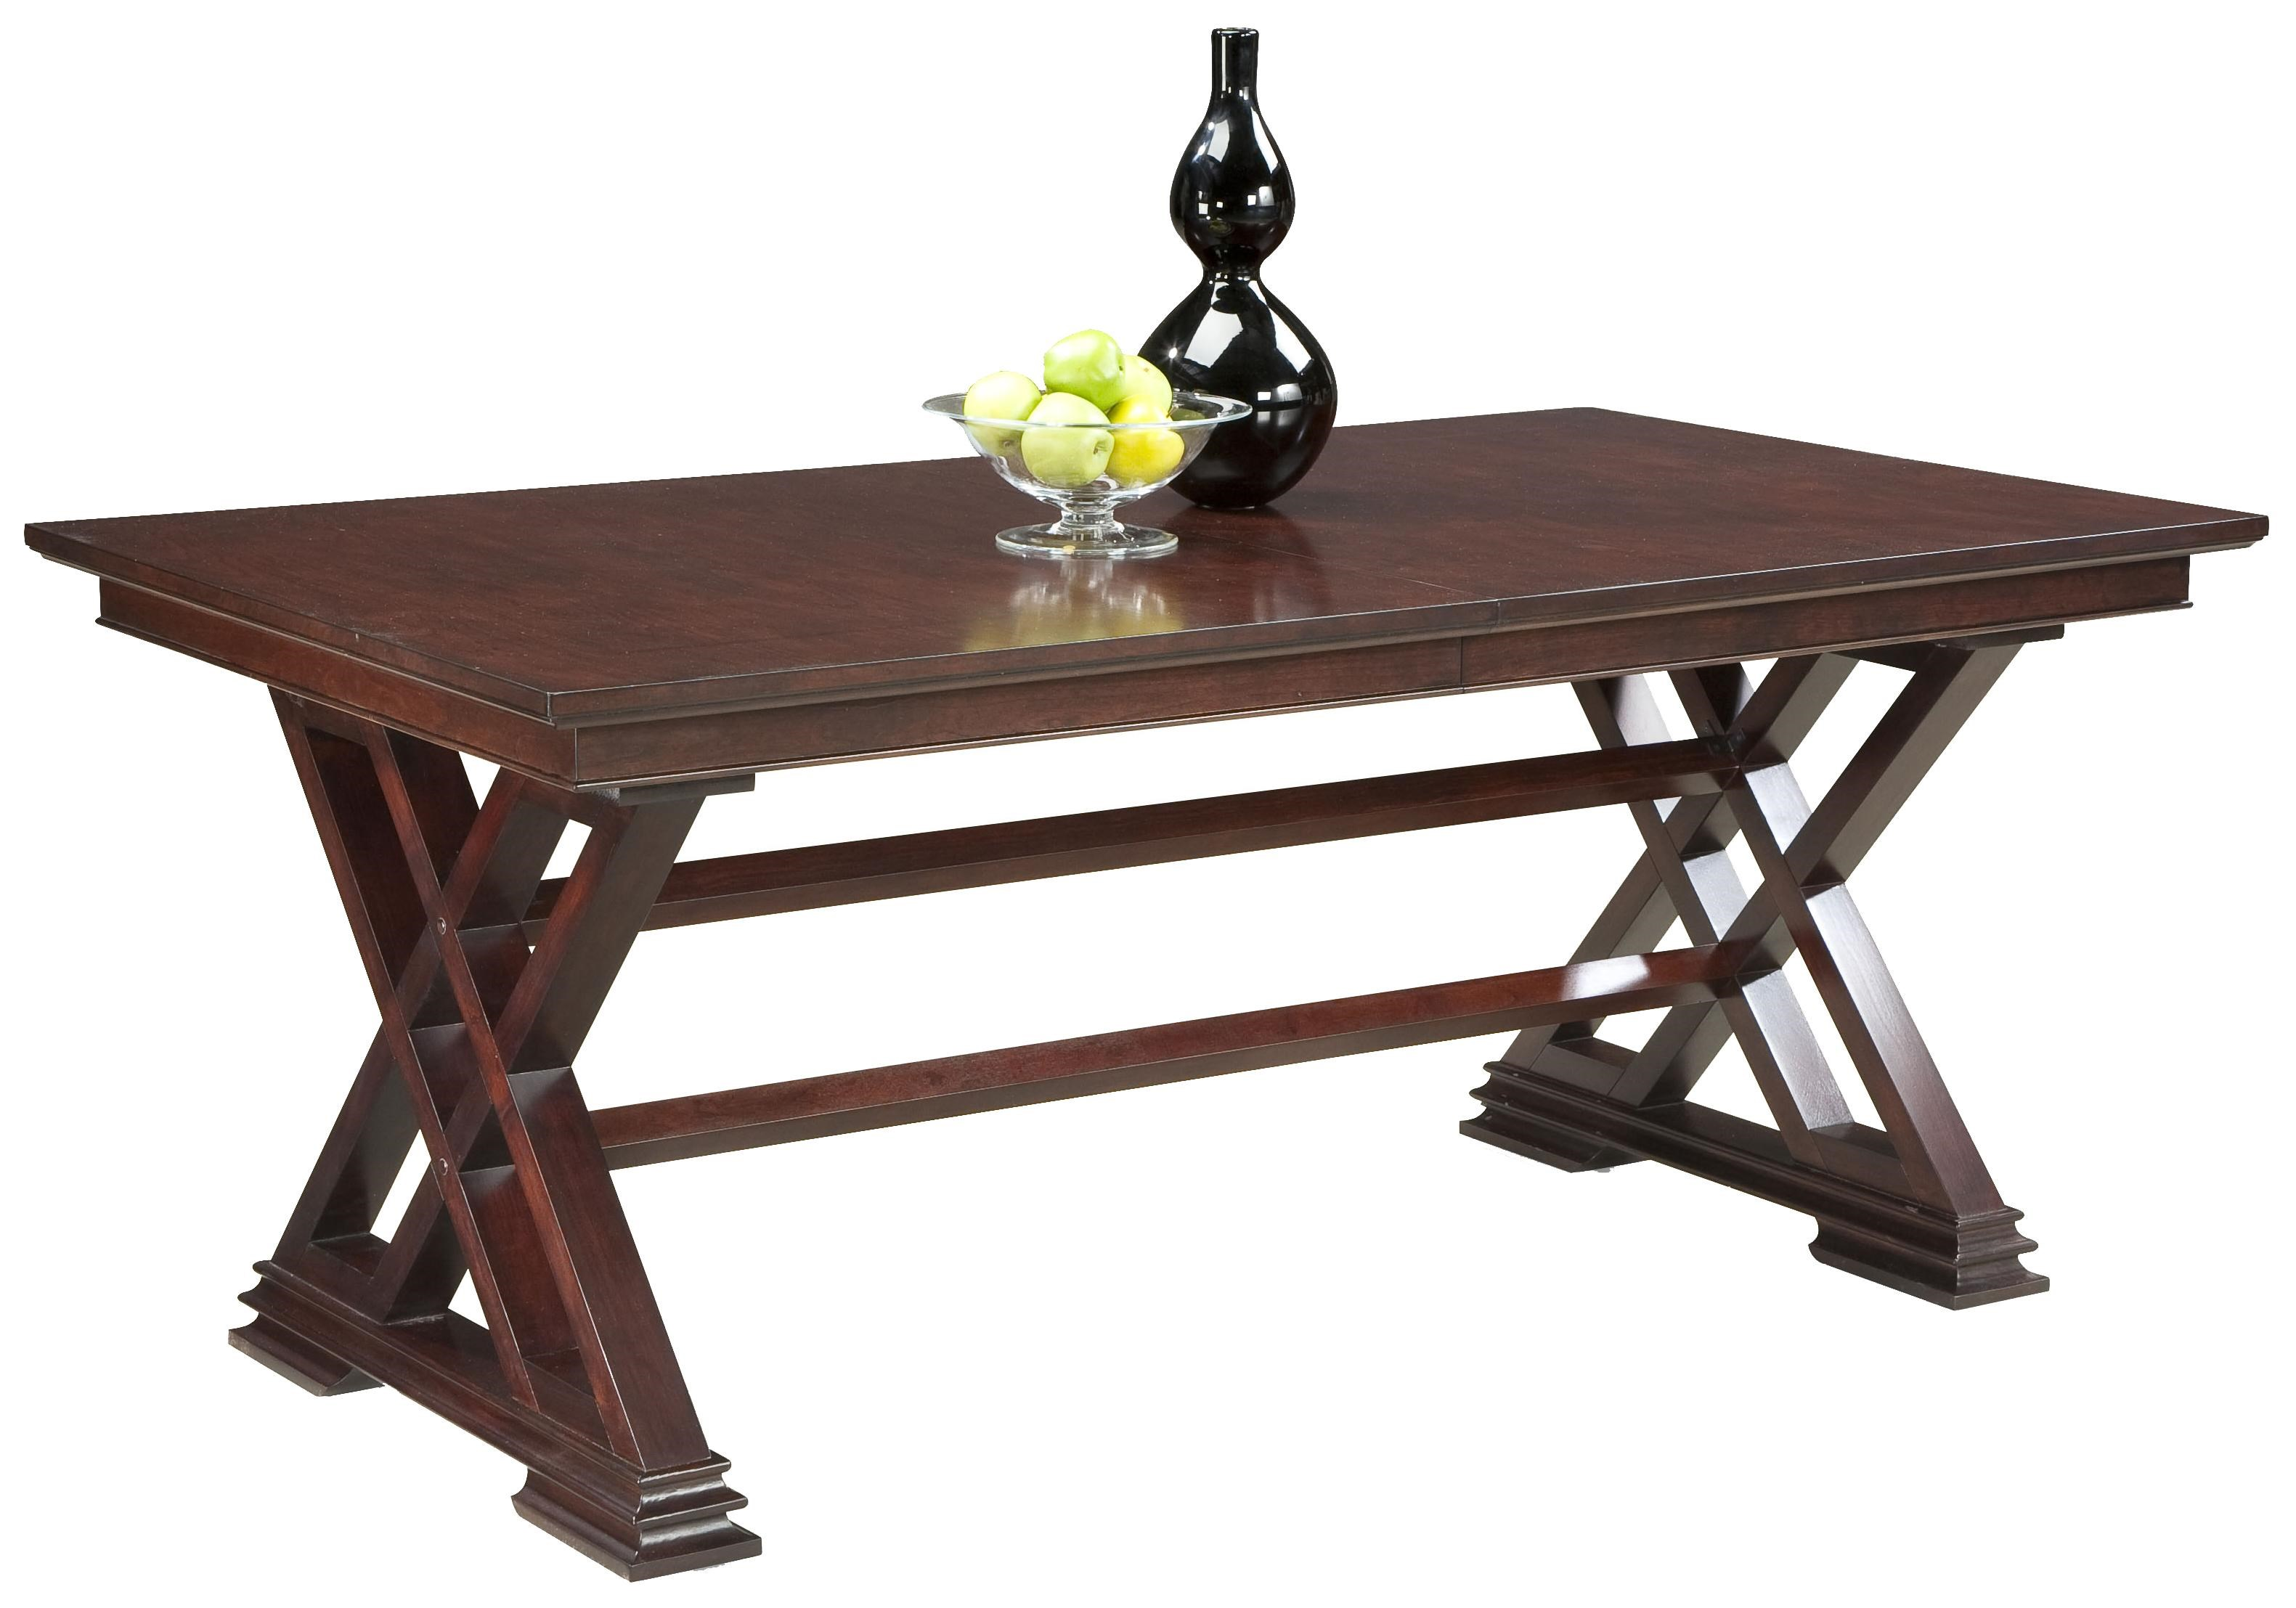 Fairfield Tables Formal Dining Room Table in Trestle Style  : tables2018120 43 bjpgscalebothampwidth500ampheight500ampfsharpen25ampdown from www.stuckeyfurniture.com size 500 x 500 jpeg 28kB